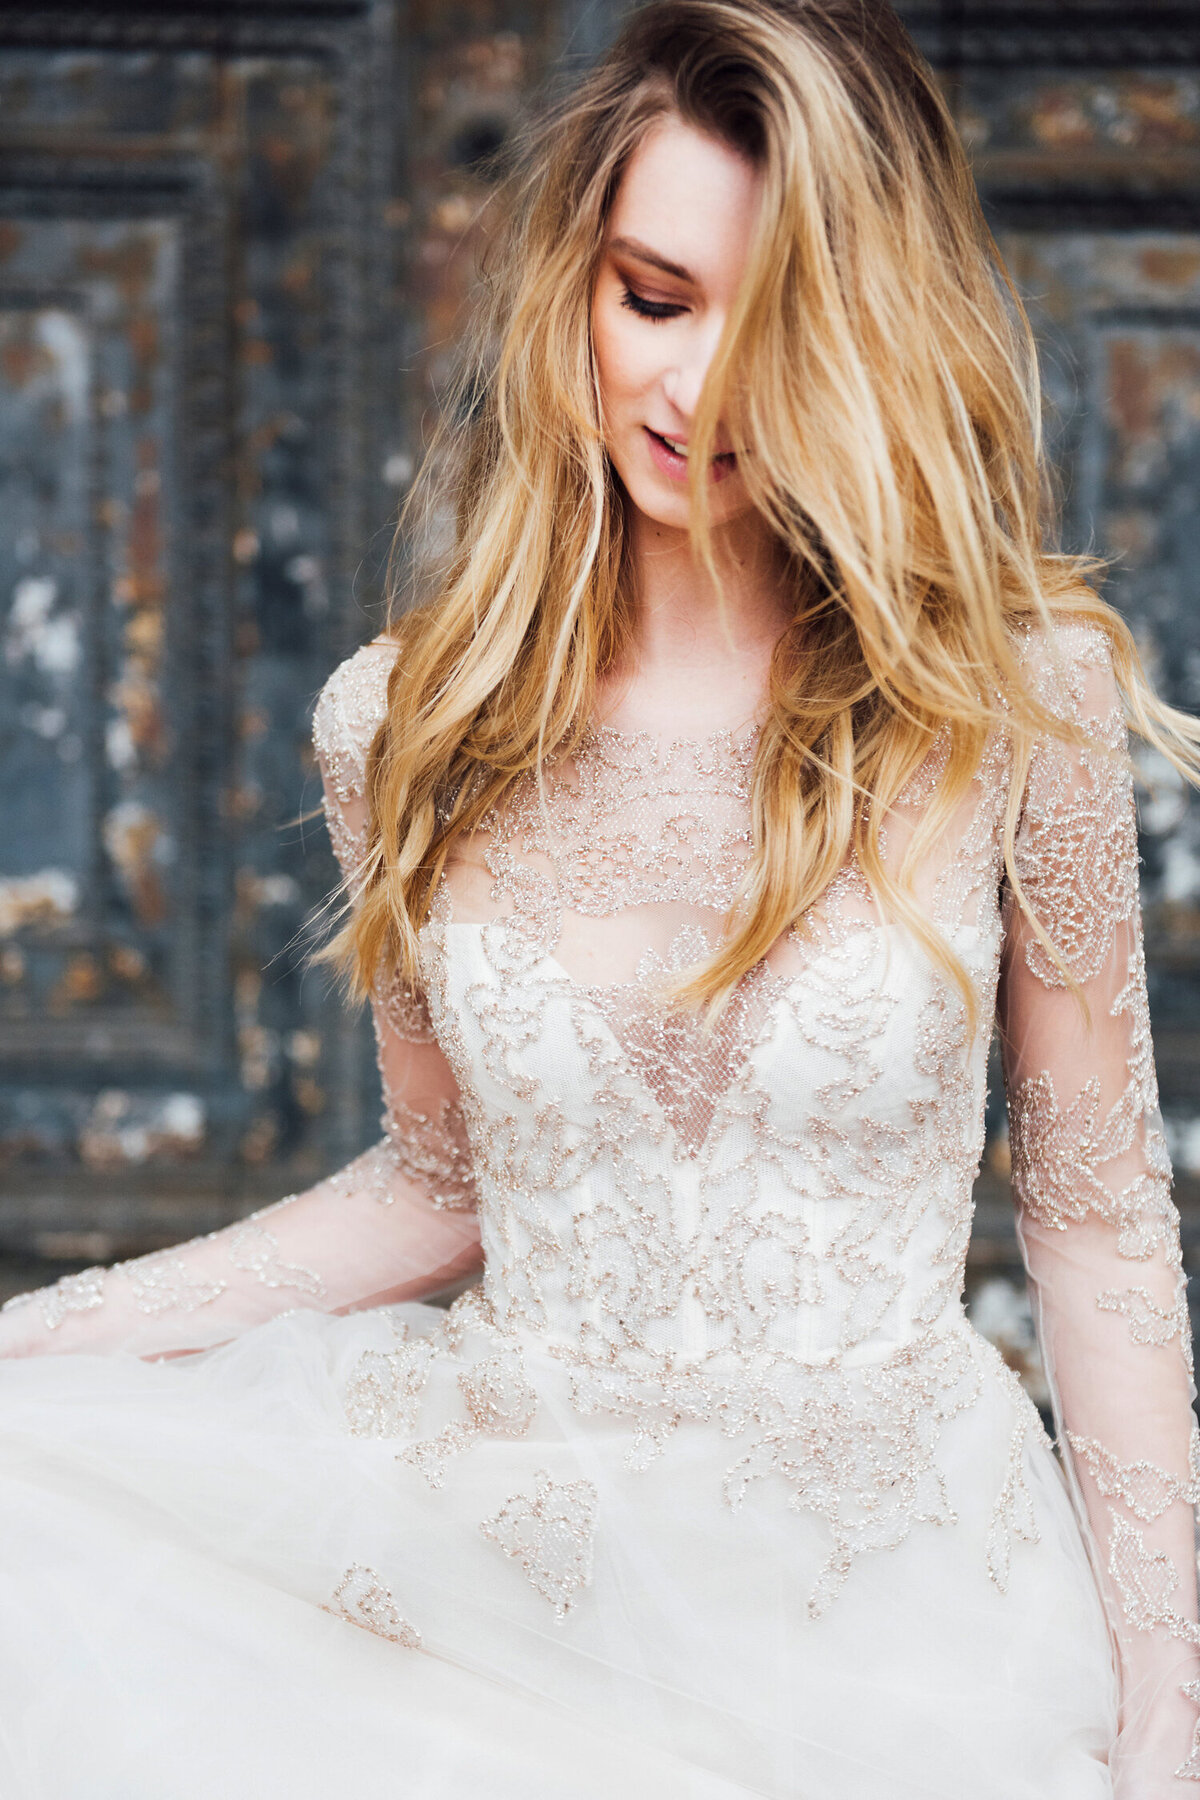 Katie Mitchell, Monique Lhuillier Bridal Paris France Wedding Trine Juel Hair and makeup 17